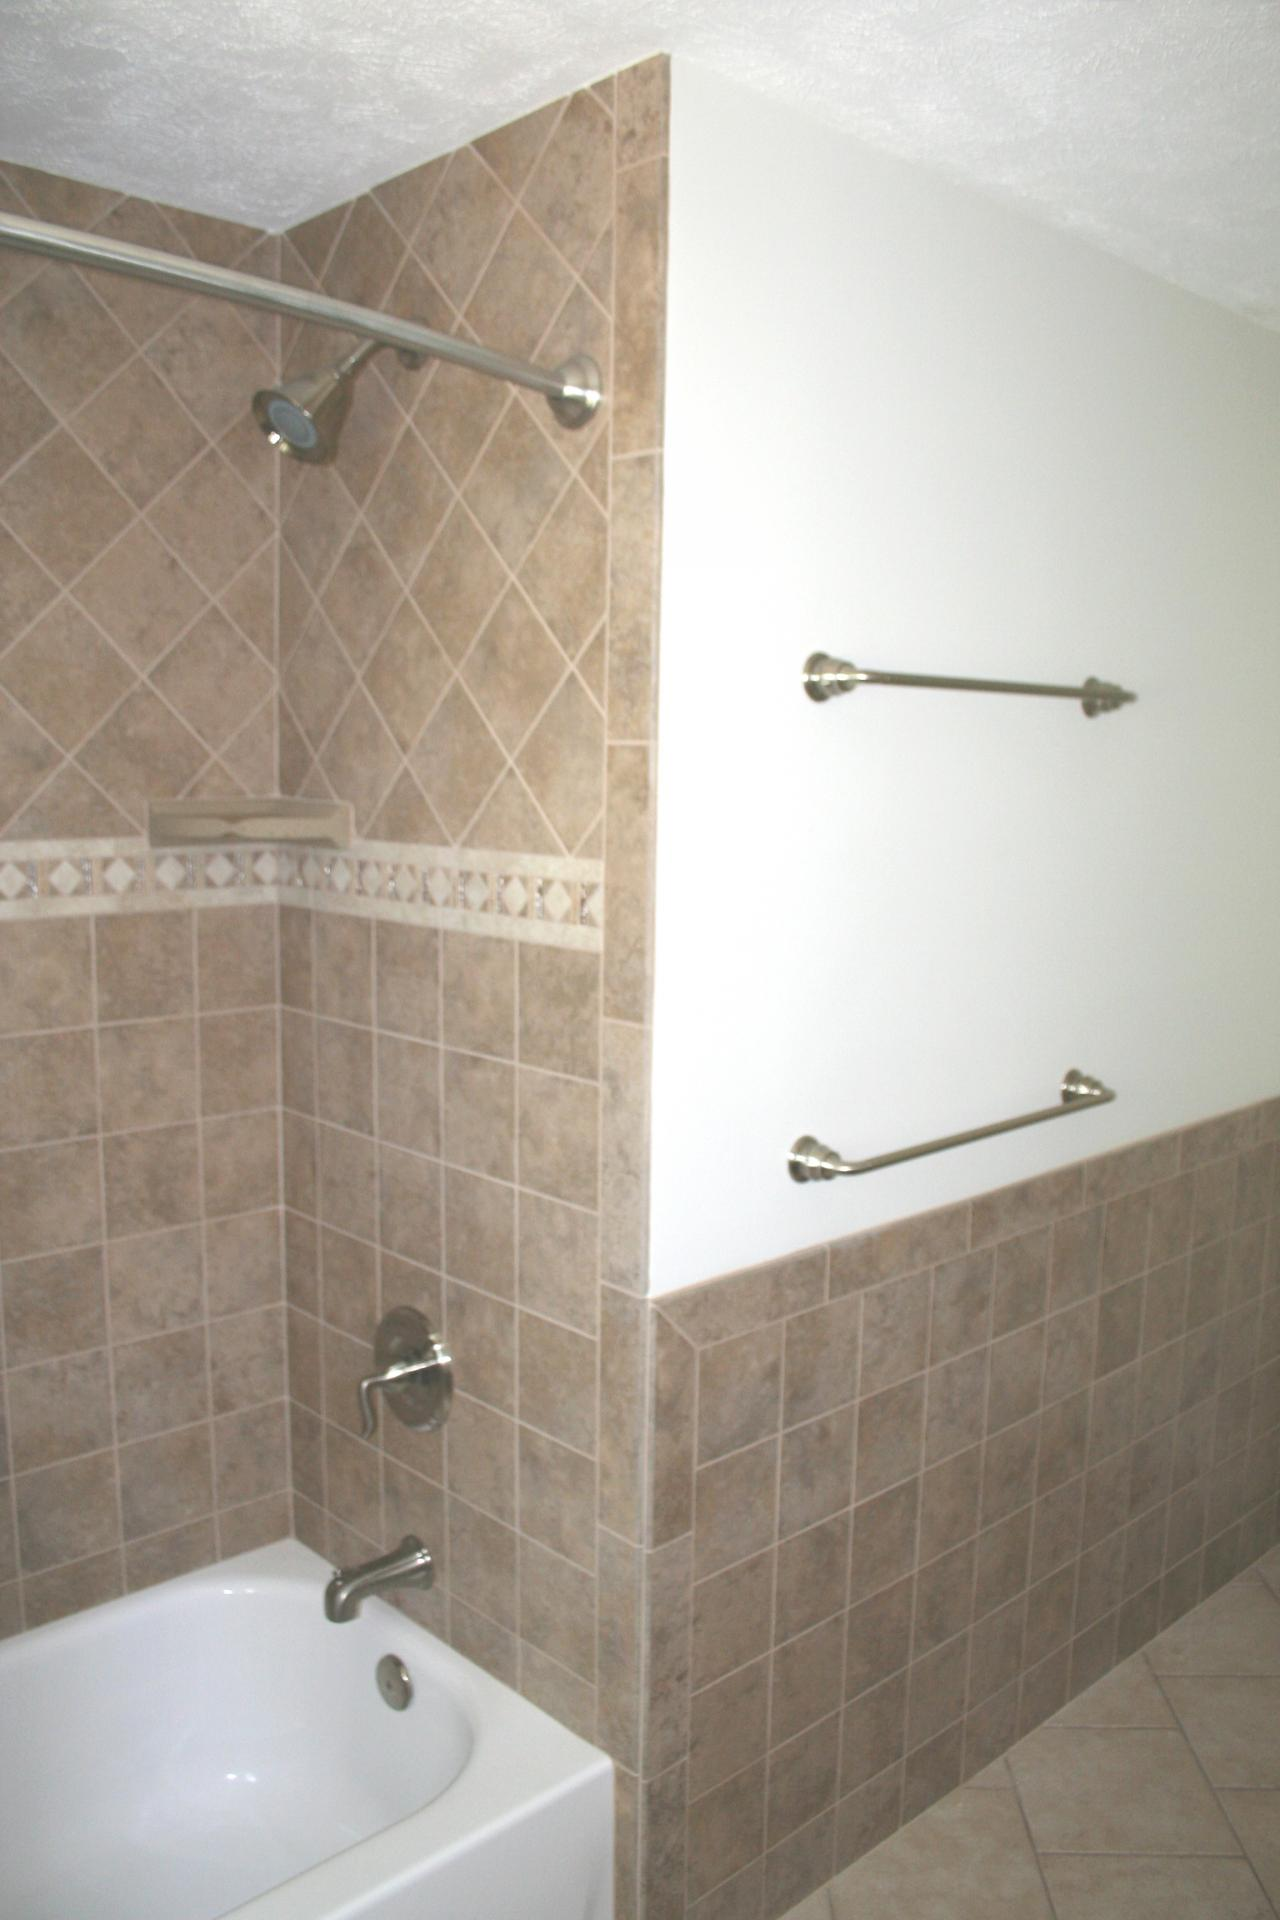 Nest homes construction floor and wall tile designs Bathroom tile showers